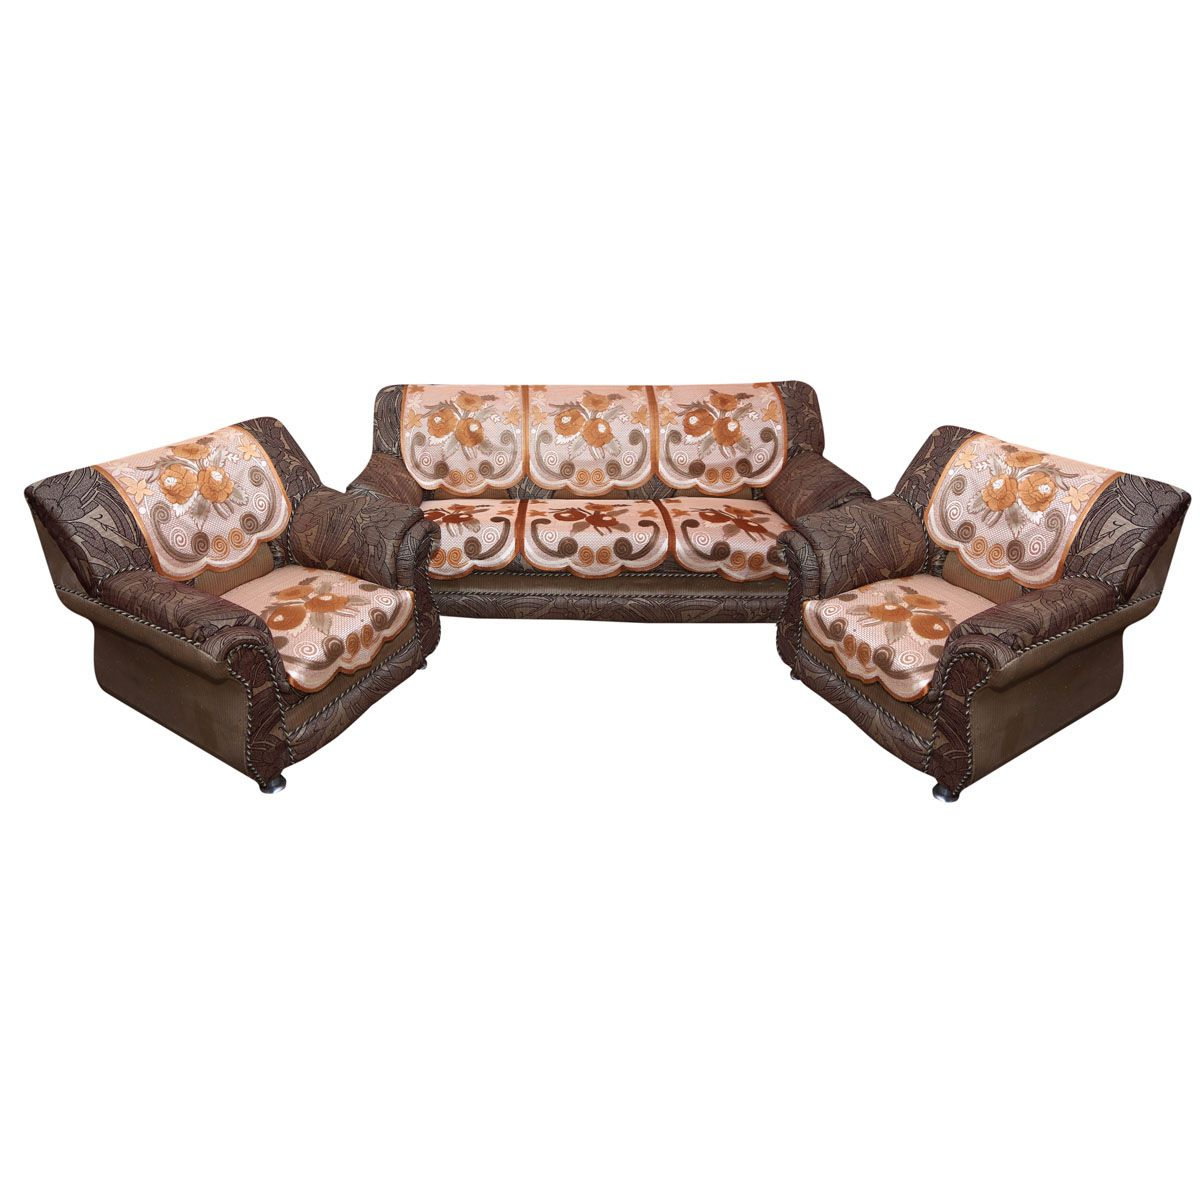 Kuber Industries™ Golden & Brown Flower 5 Seater Heavy Cloth Net Sofa Cover Set -10 Pieces Code-KIC113